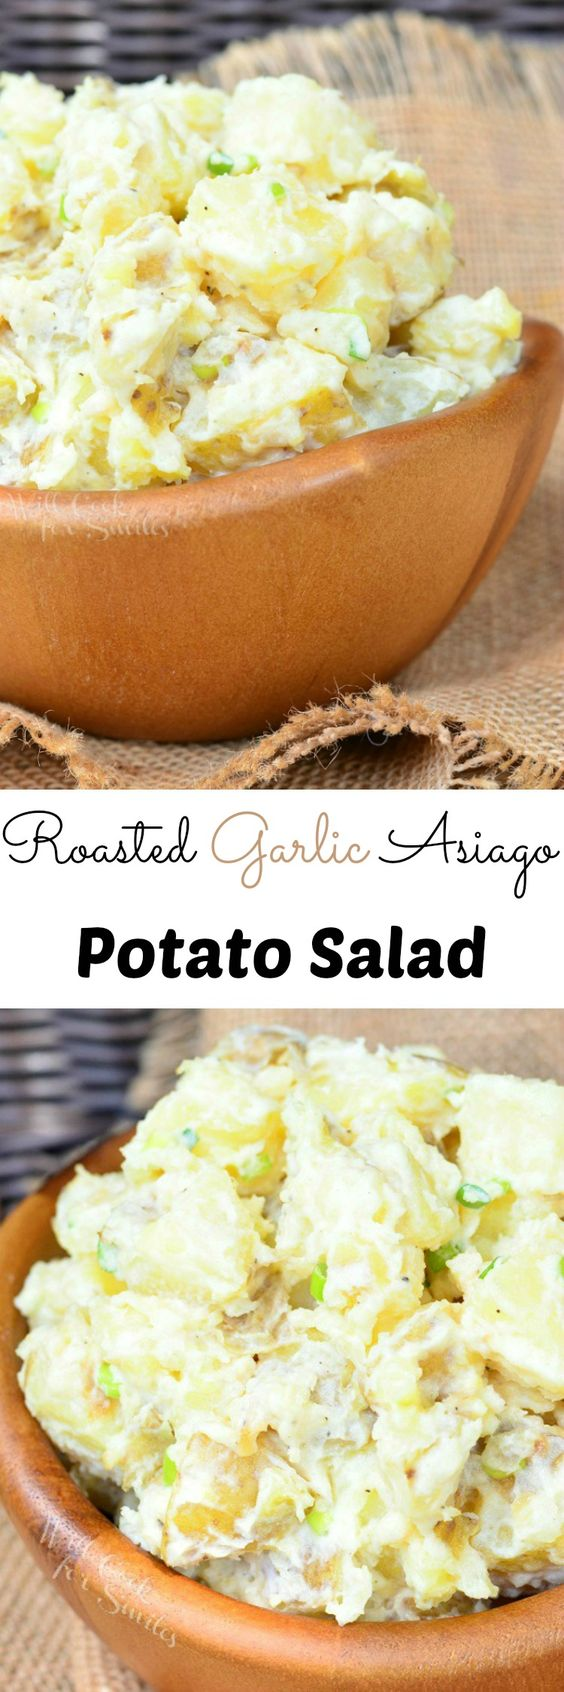 Roasted Garlic Asiago Potato Salad. Classic summer barbecue side dish made with fantastic flavorful additions, making it a MUST TRY dish!